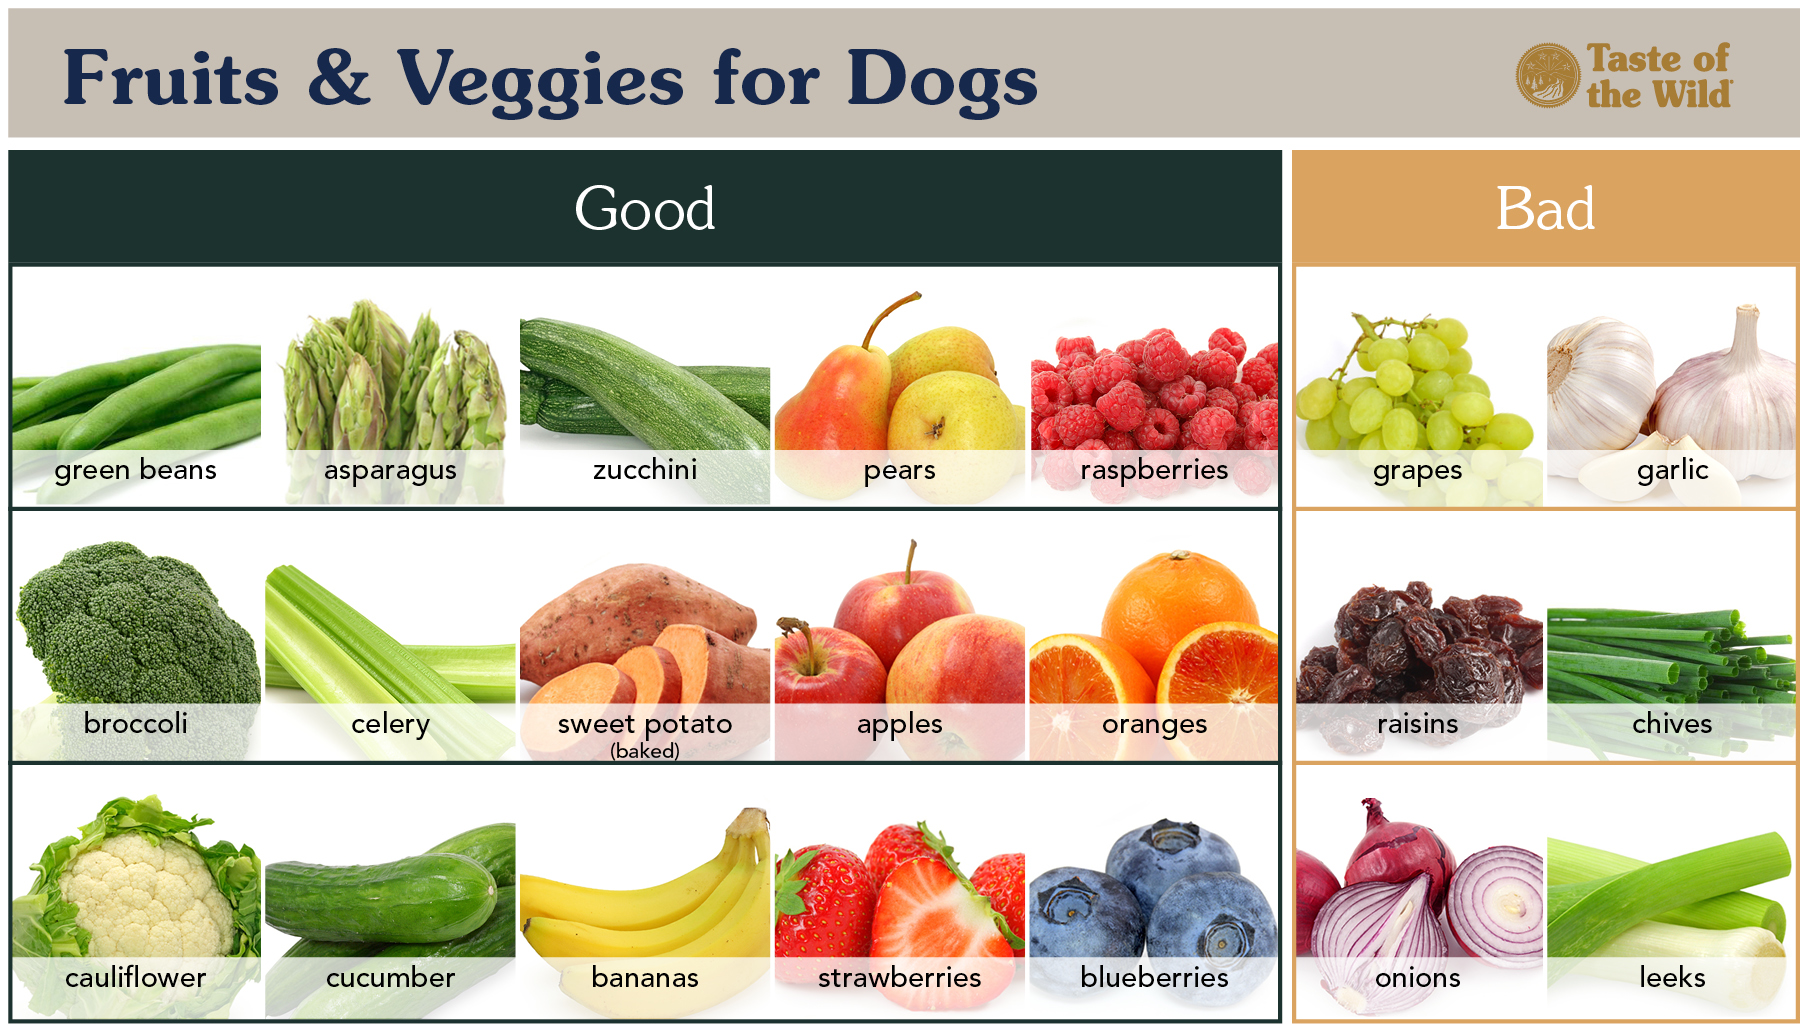 Good and Bad Fruits and Veggies for Dogs Chart | Taste of the Wild